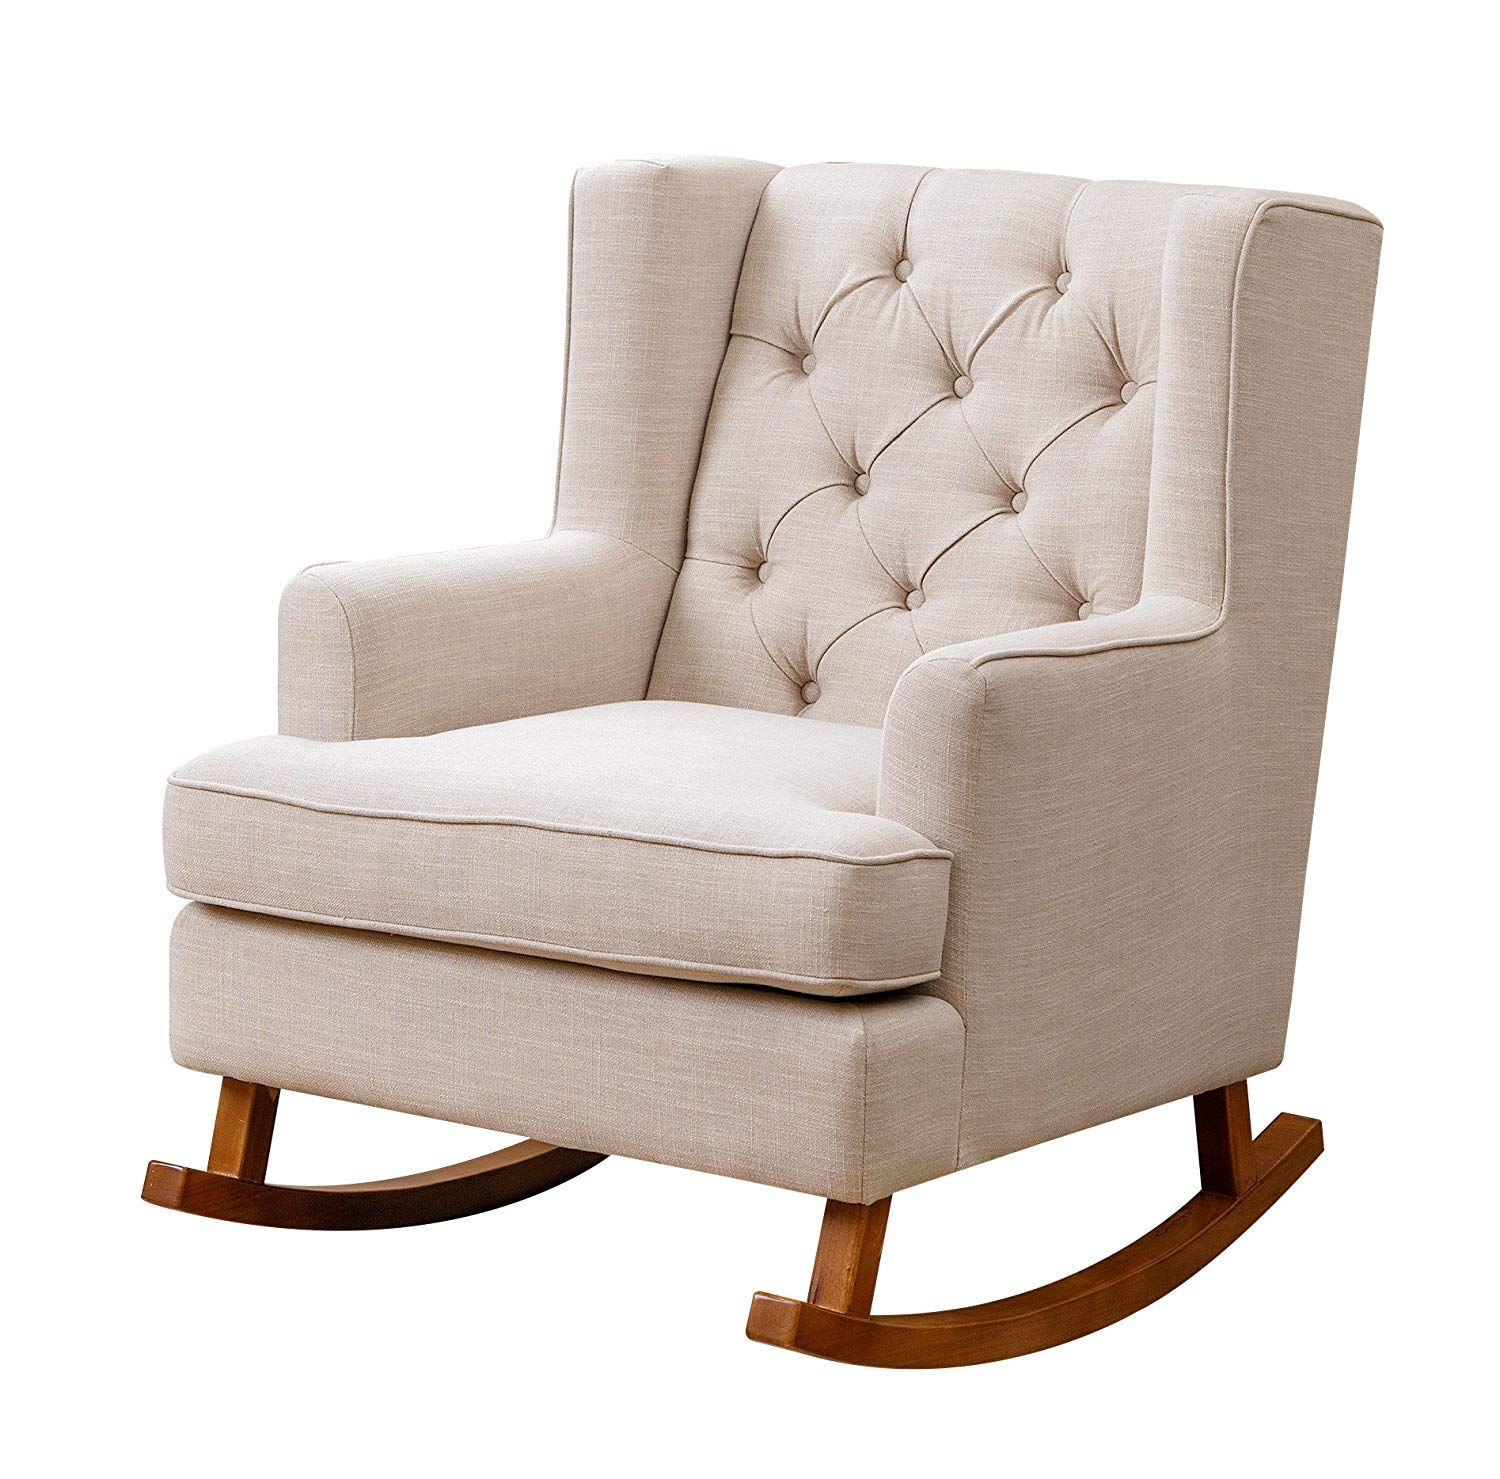 Delta Furniture Emerson Upholstered Glider Swivel Rocker